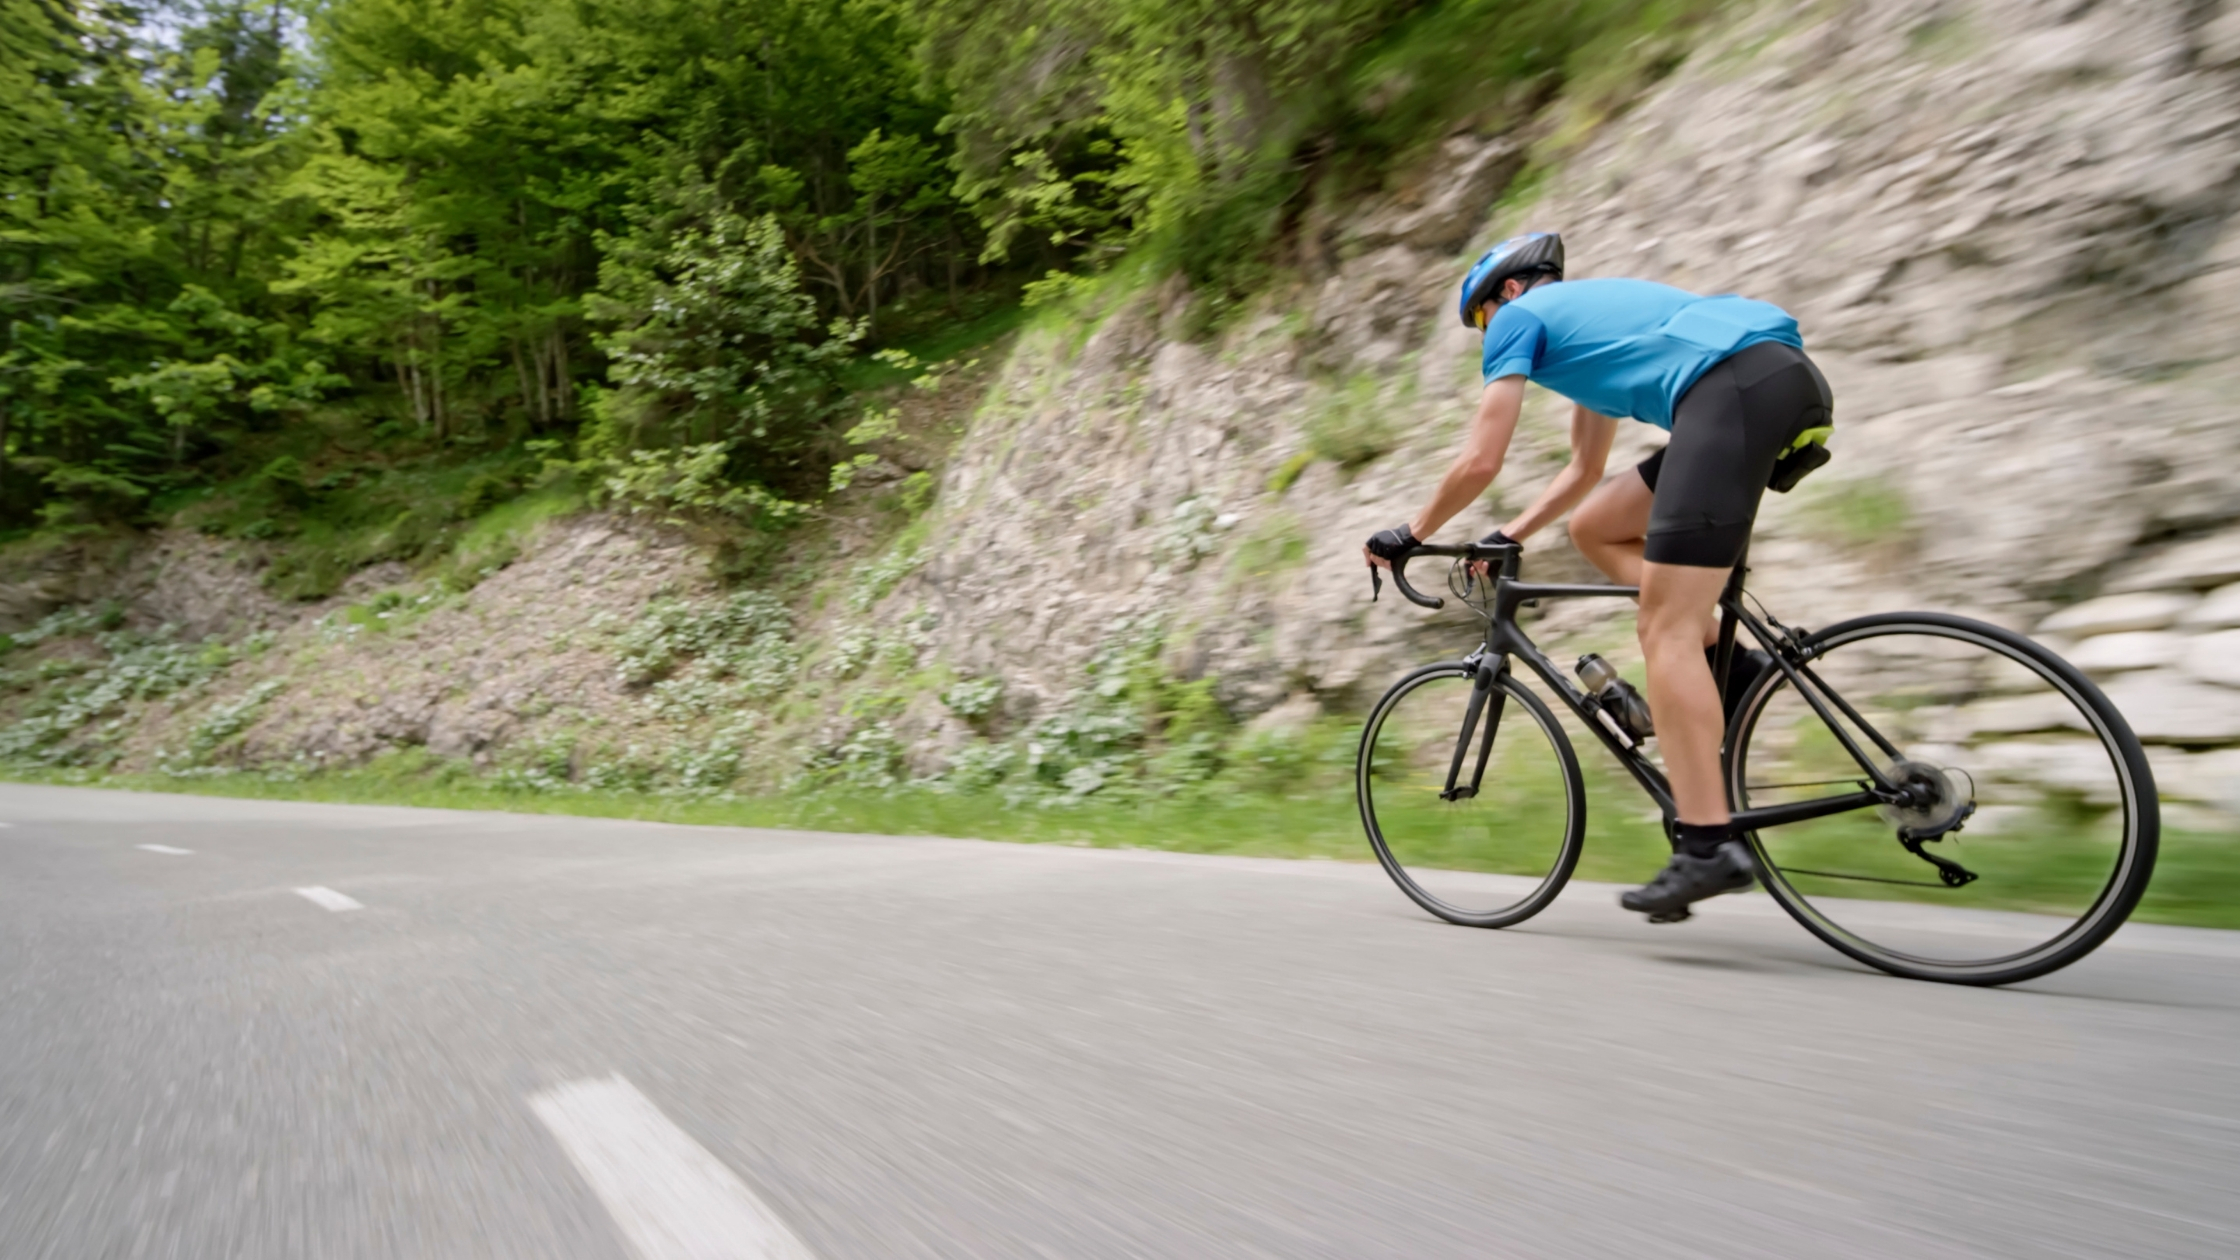 Are Mountain Bikes Good For Roads